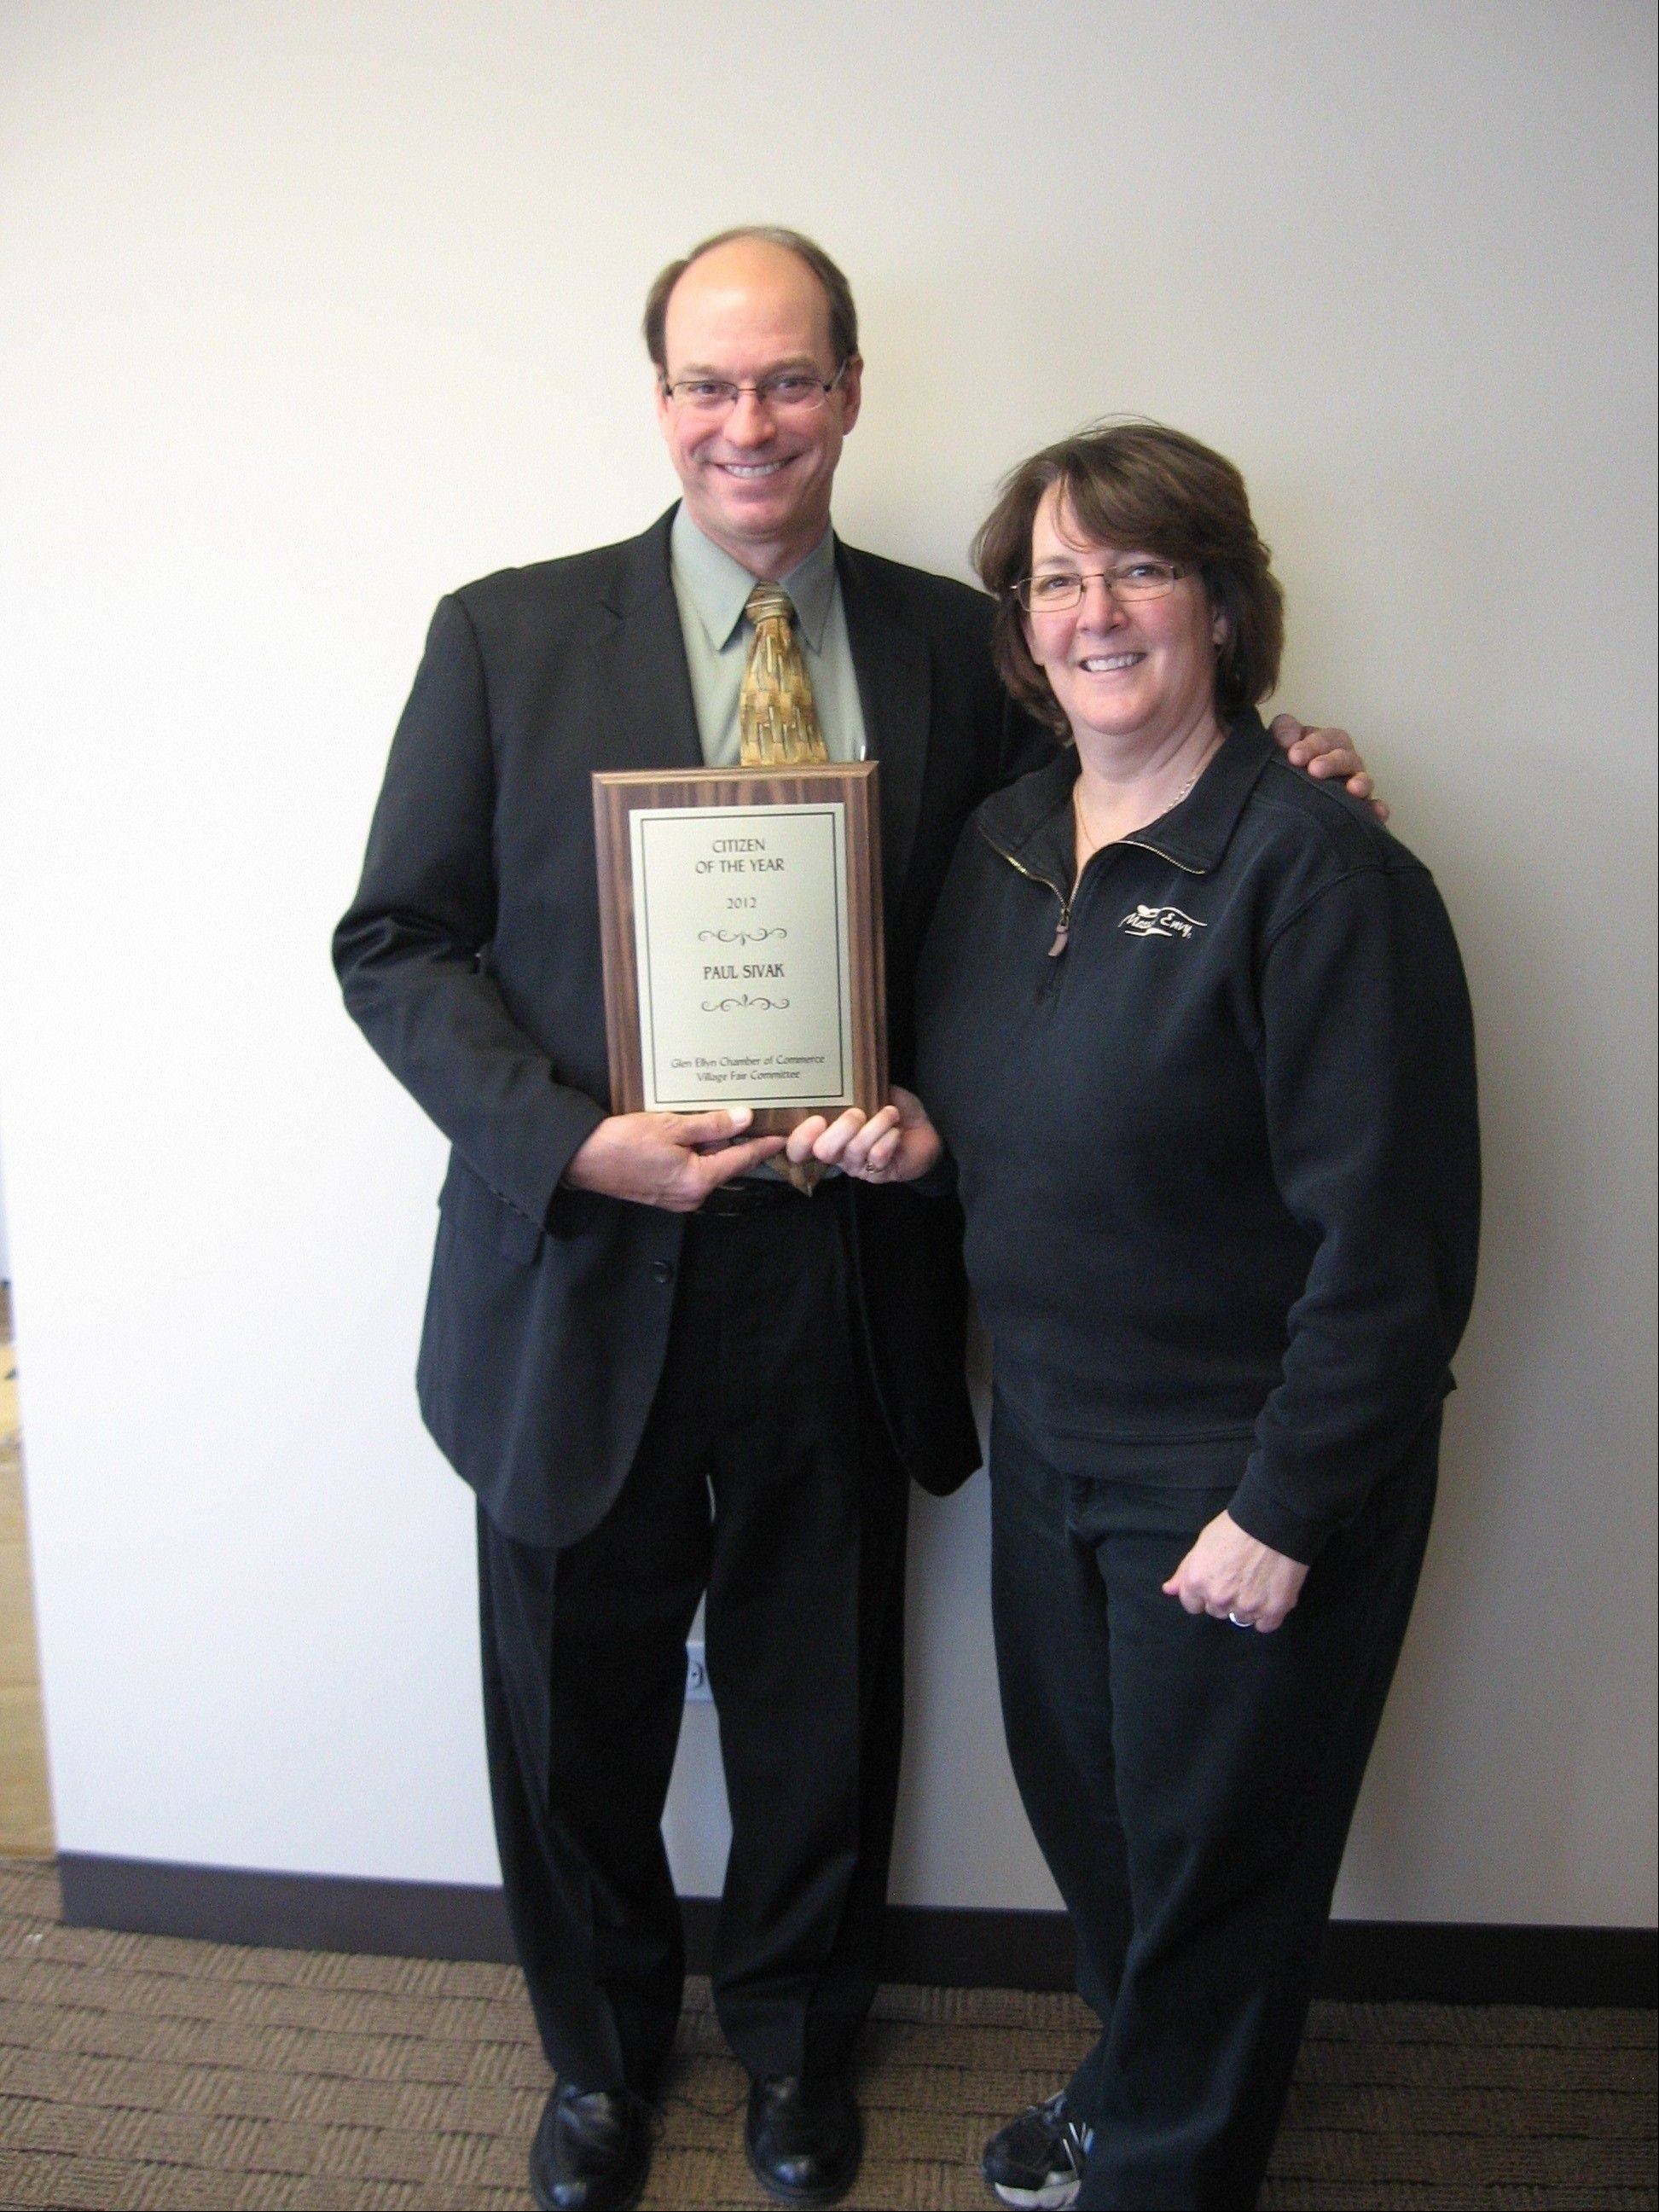 Paul Sivak of Precision Payroll and the 2012 president of the Glen Ellyn Chamber of Commerce was awarded Citizen of the Year at the Glen Ellyn Community Awards. He is pictured with Katie Cass of Massage Envy Spa, the chamber's 2013 president.